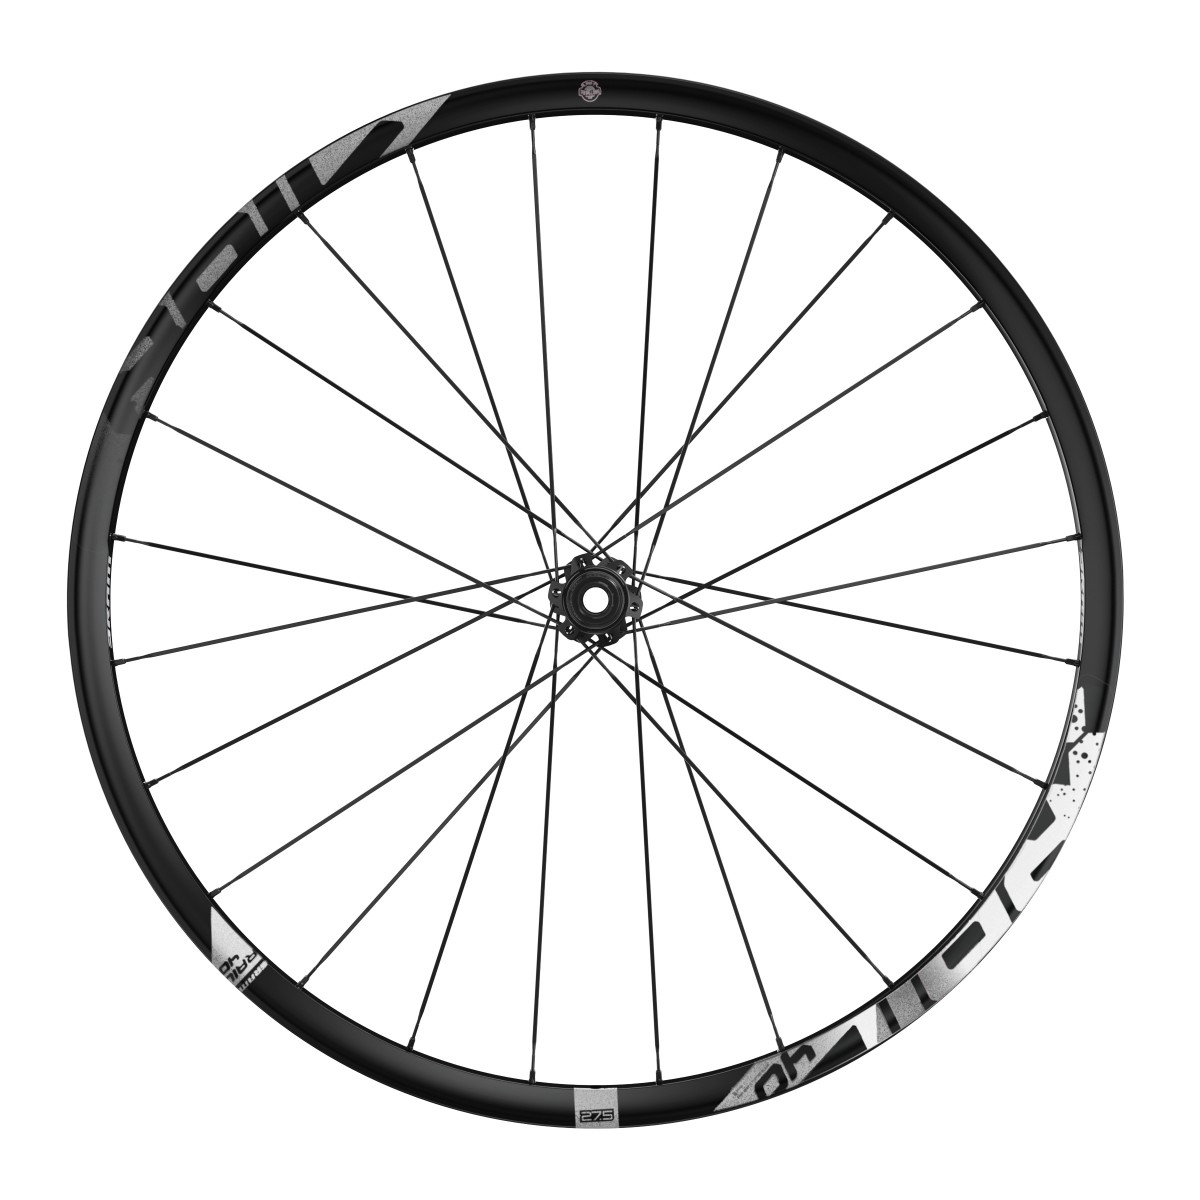 SRAM_MTB_RAIL_40_27.5in_Front_Side_White_MH